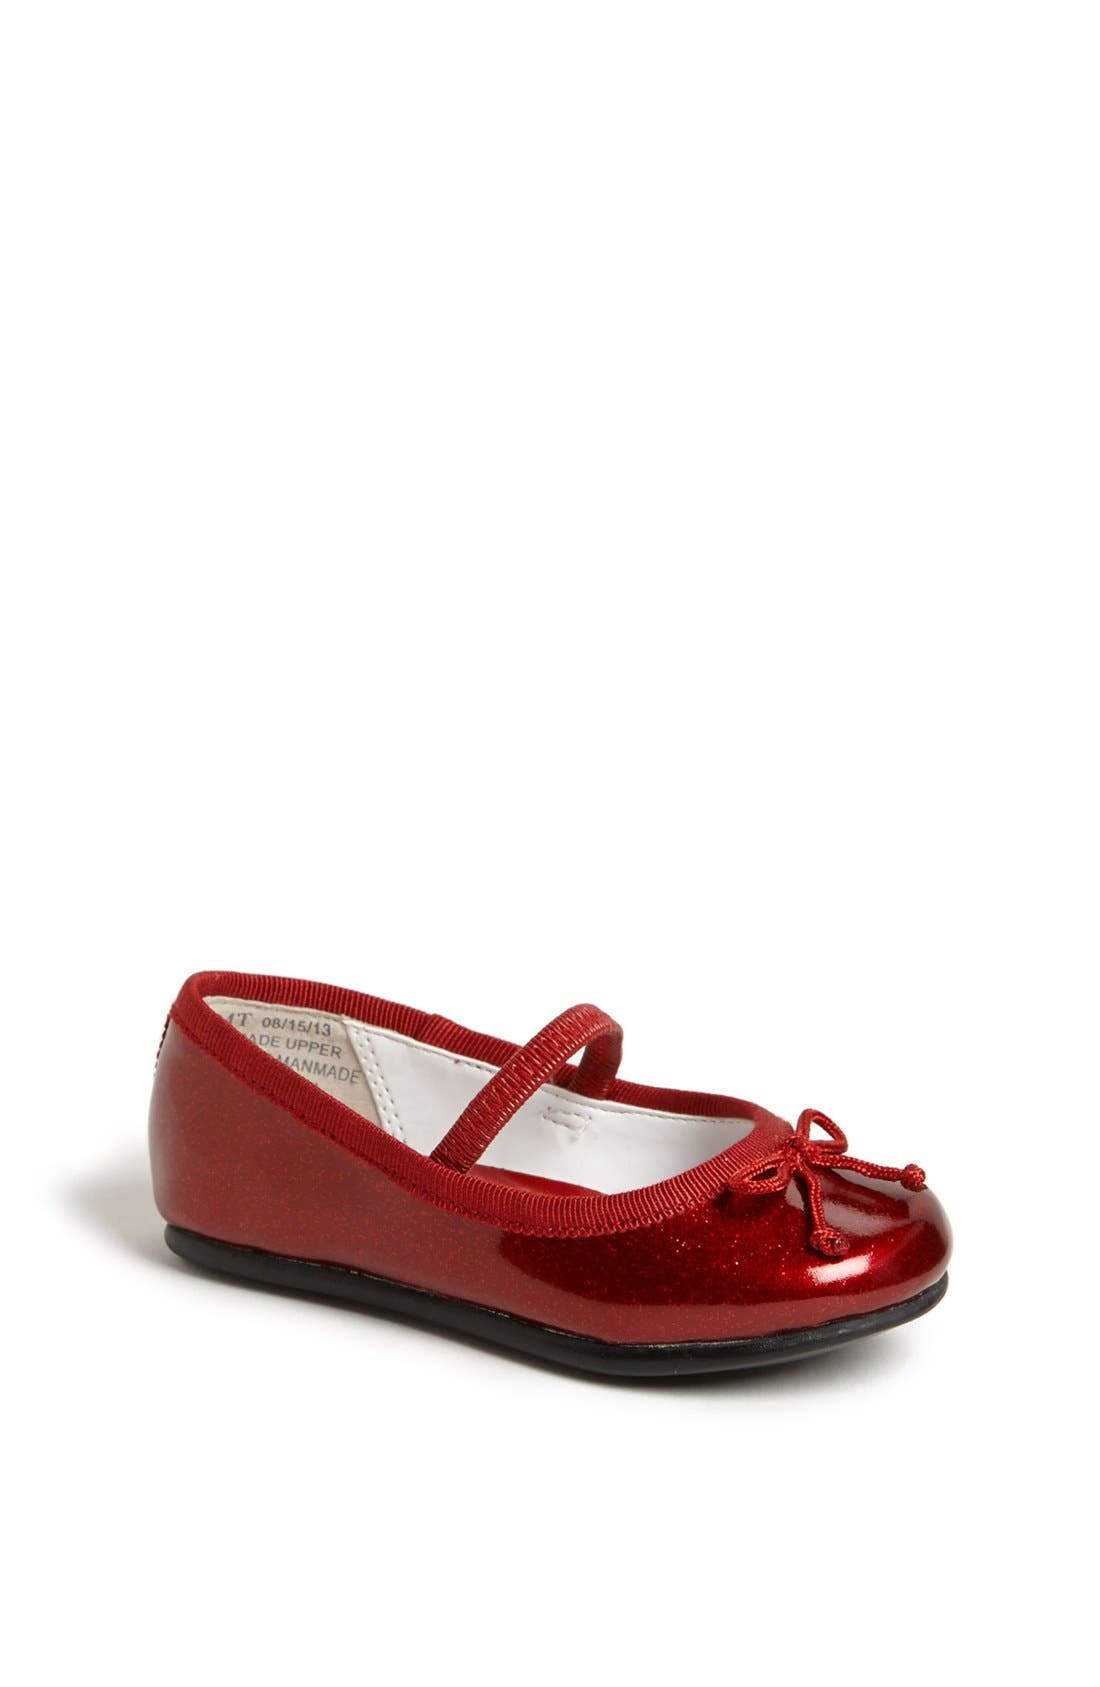 Alternate Image 1 Selected - Nordstrom 'Bella' Ballet Flat (Walker, Toddler, Little Kid & Big Kid)